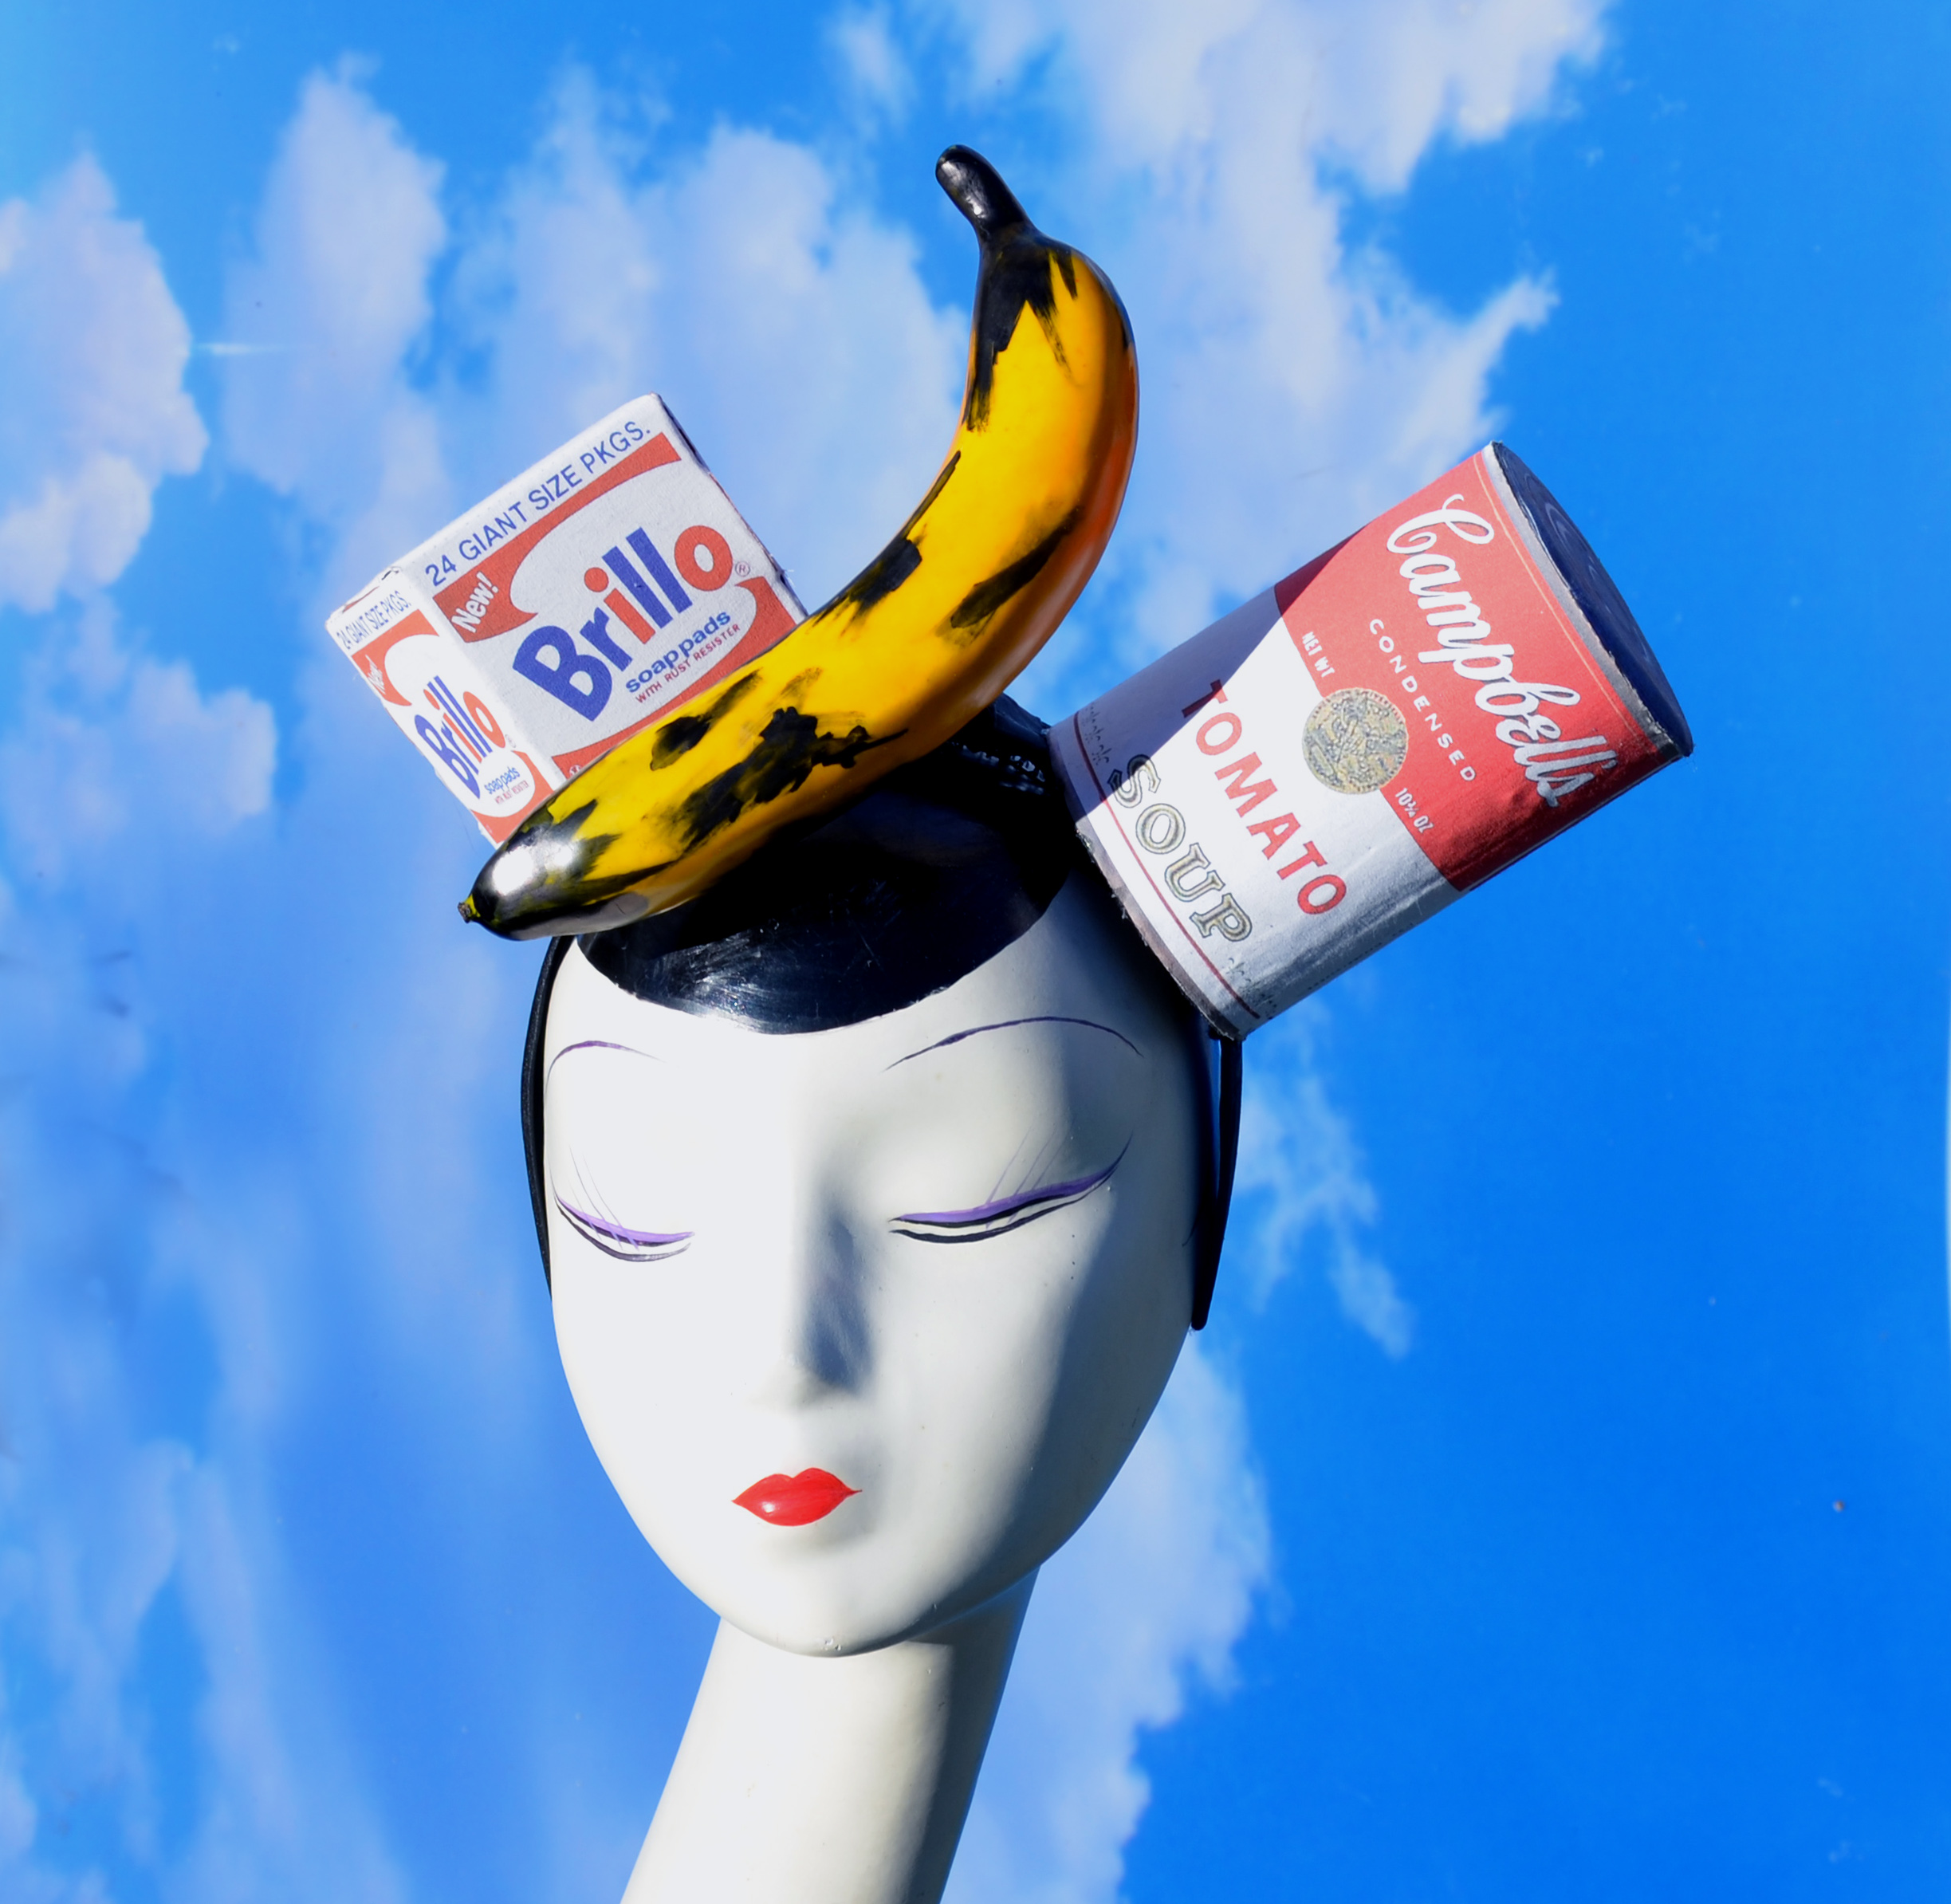 Andy Warhol Campbells Soup Can, Banana, Brillo Box Headpiece